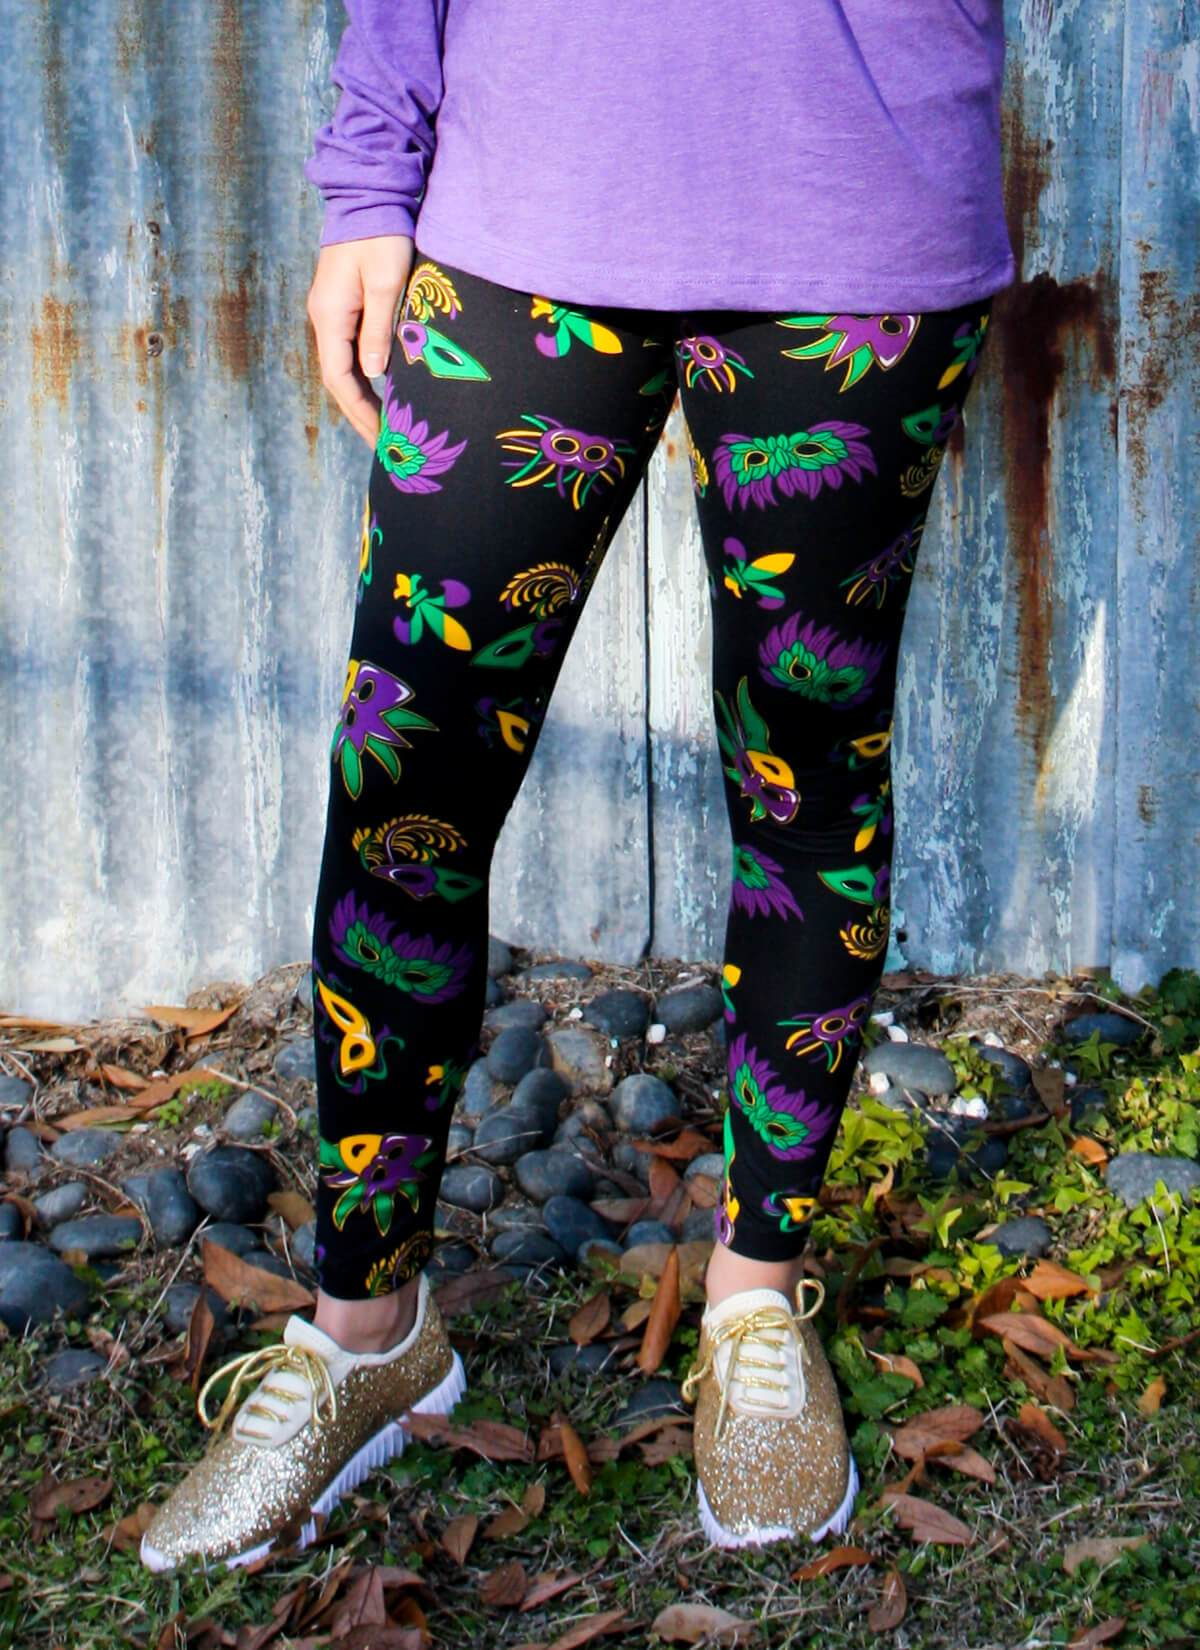 3b16db3aec2b5 Mardi Gras Mask Leggings (Regular & Curvy) - GLAM - Girls Love A ...